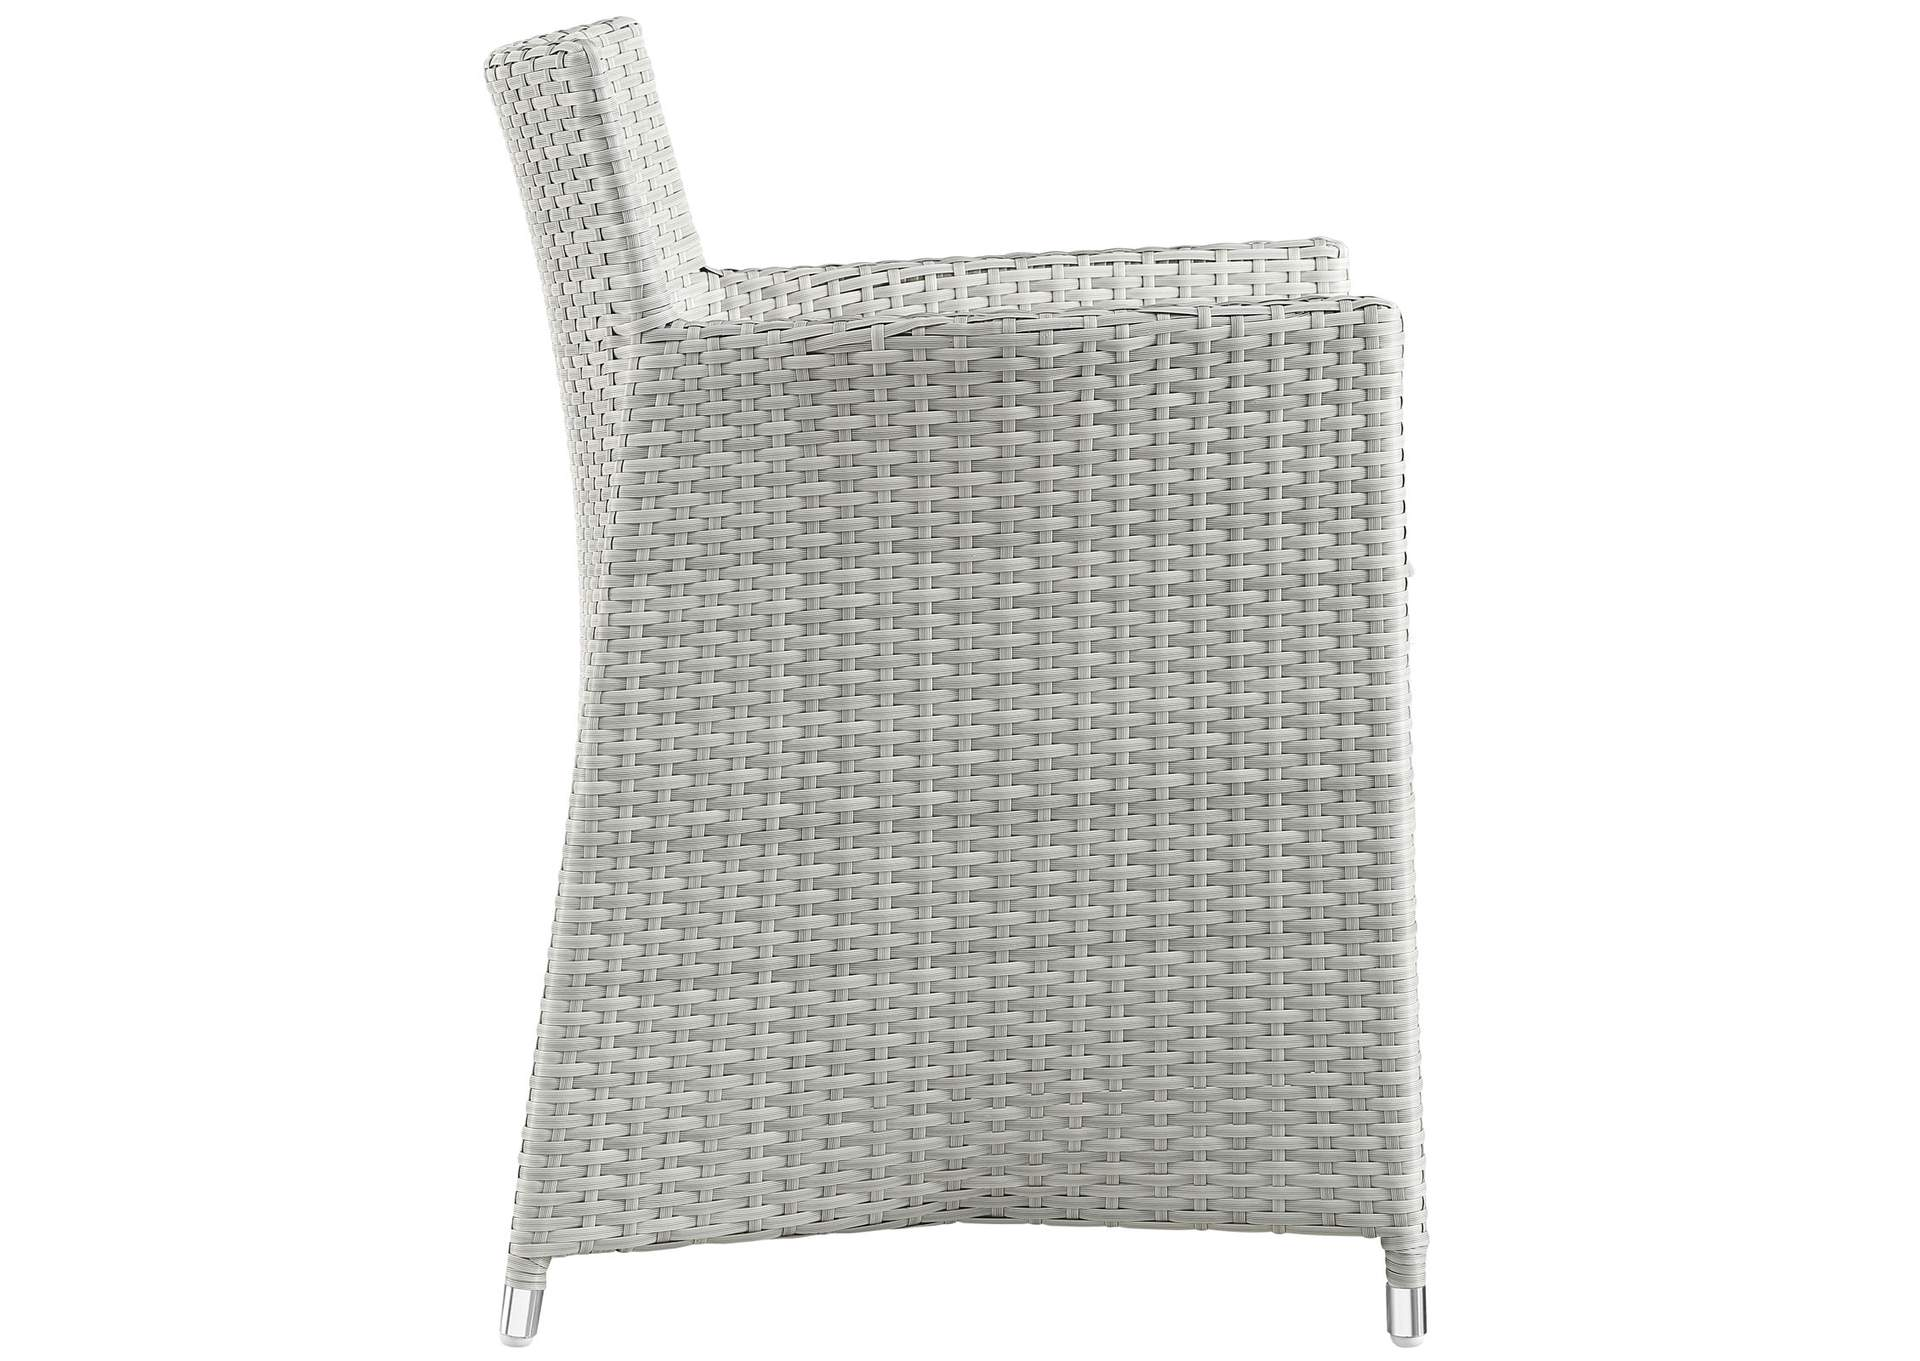 Junction Gray White 3 Piece Outdoor Patio Wicker Dining Set,Modway